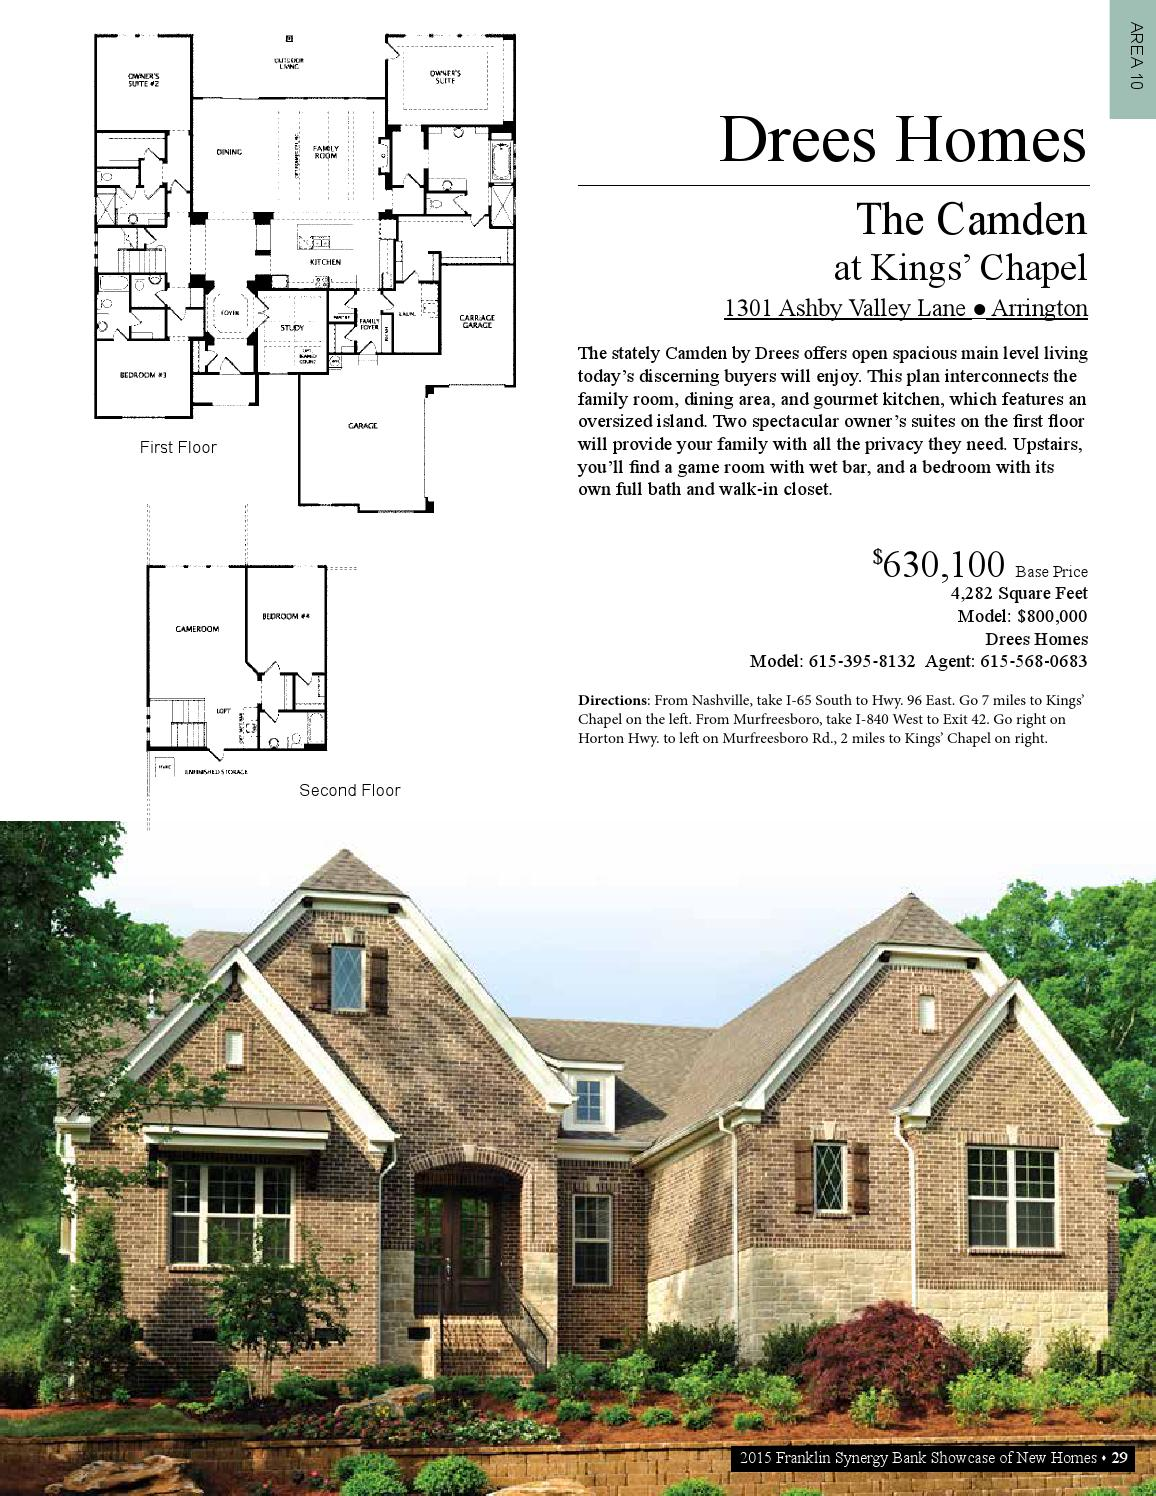 2015 SHOWCASE HOME BUYER's GUIDE by Home Builders ... on